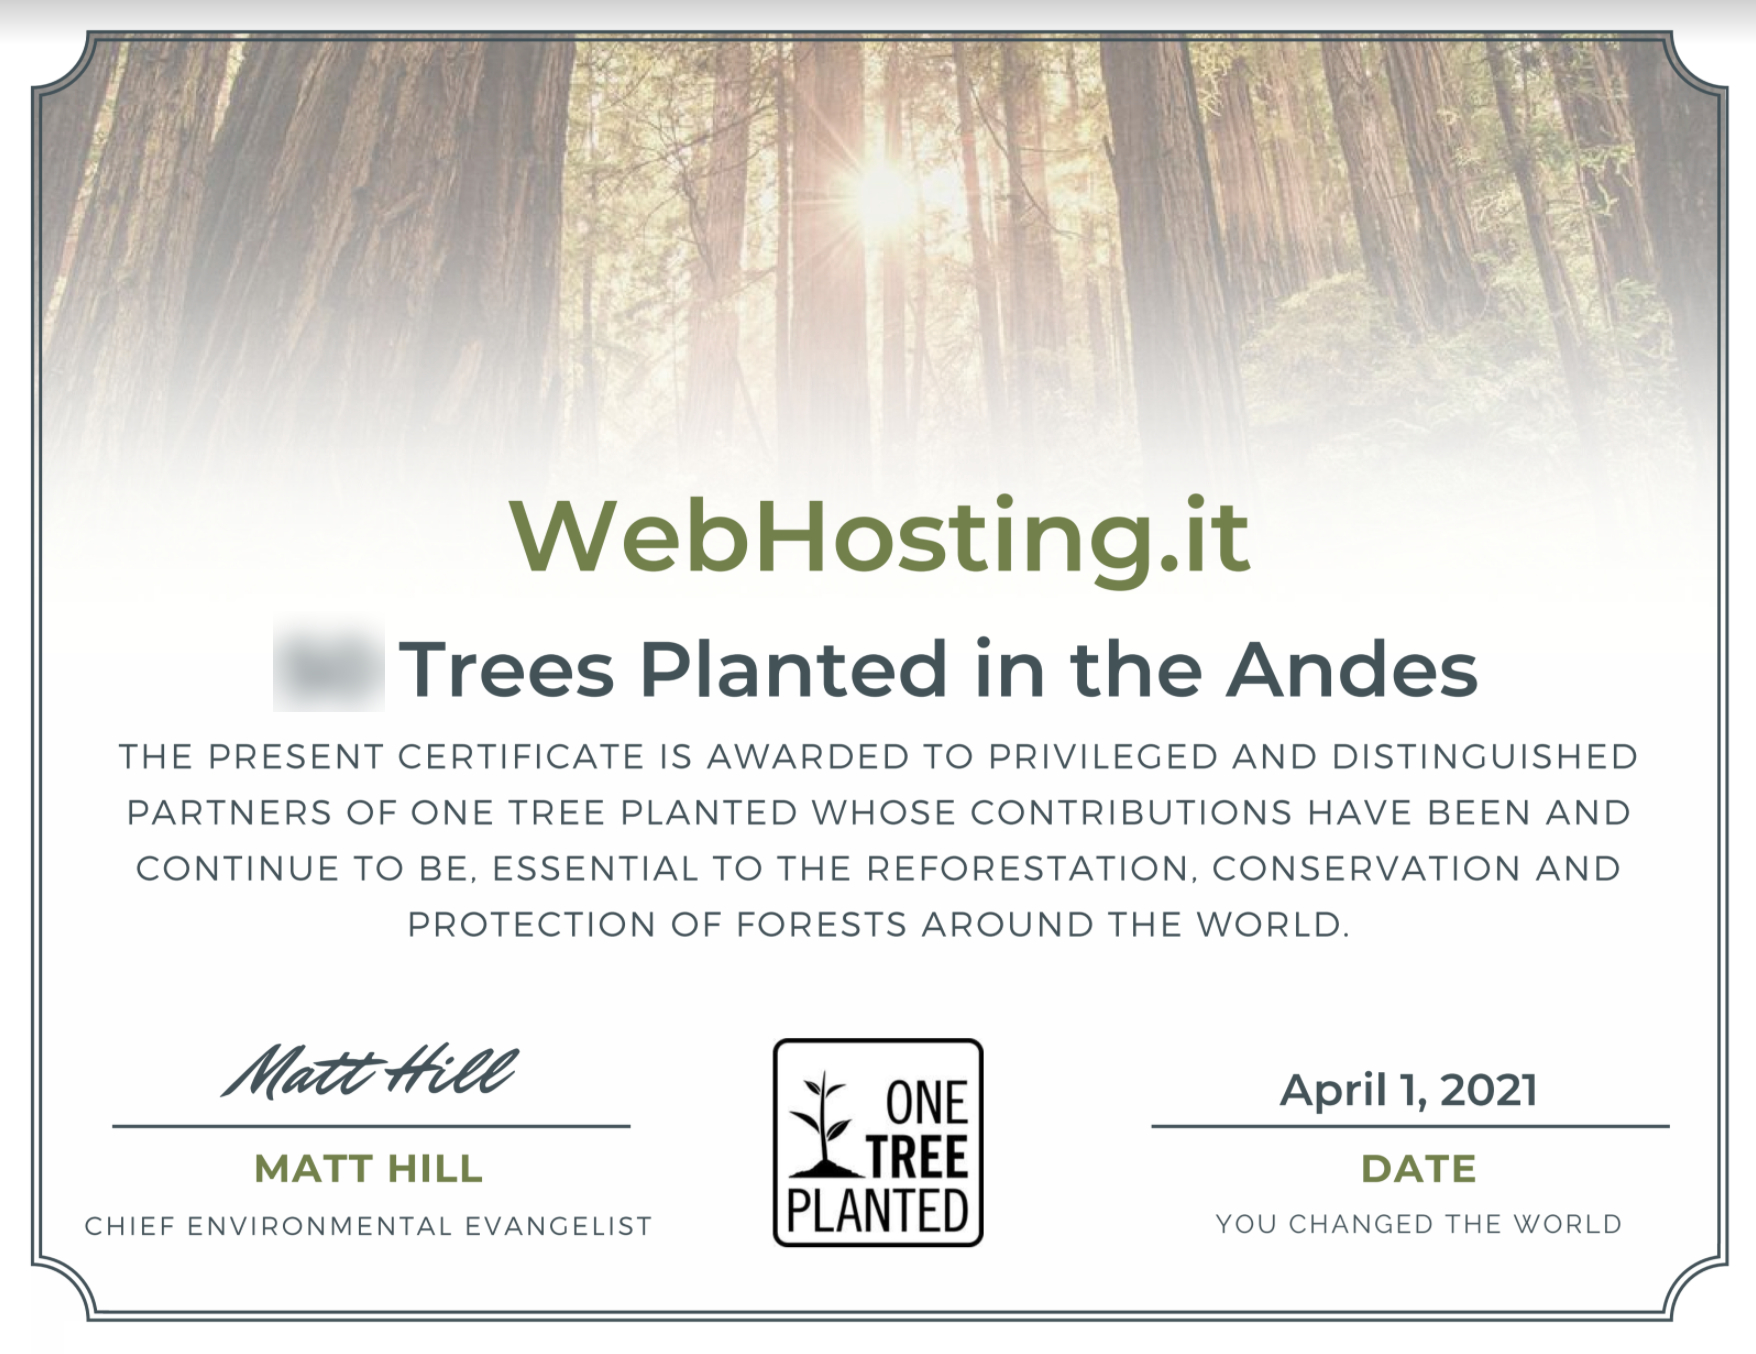 WebHosting.it e One Tree Planted APRILE 2021